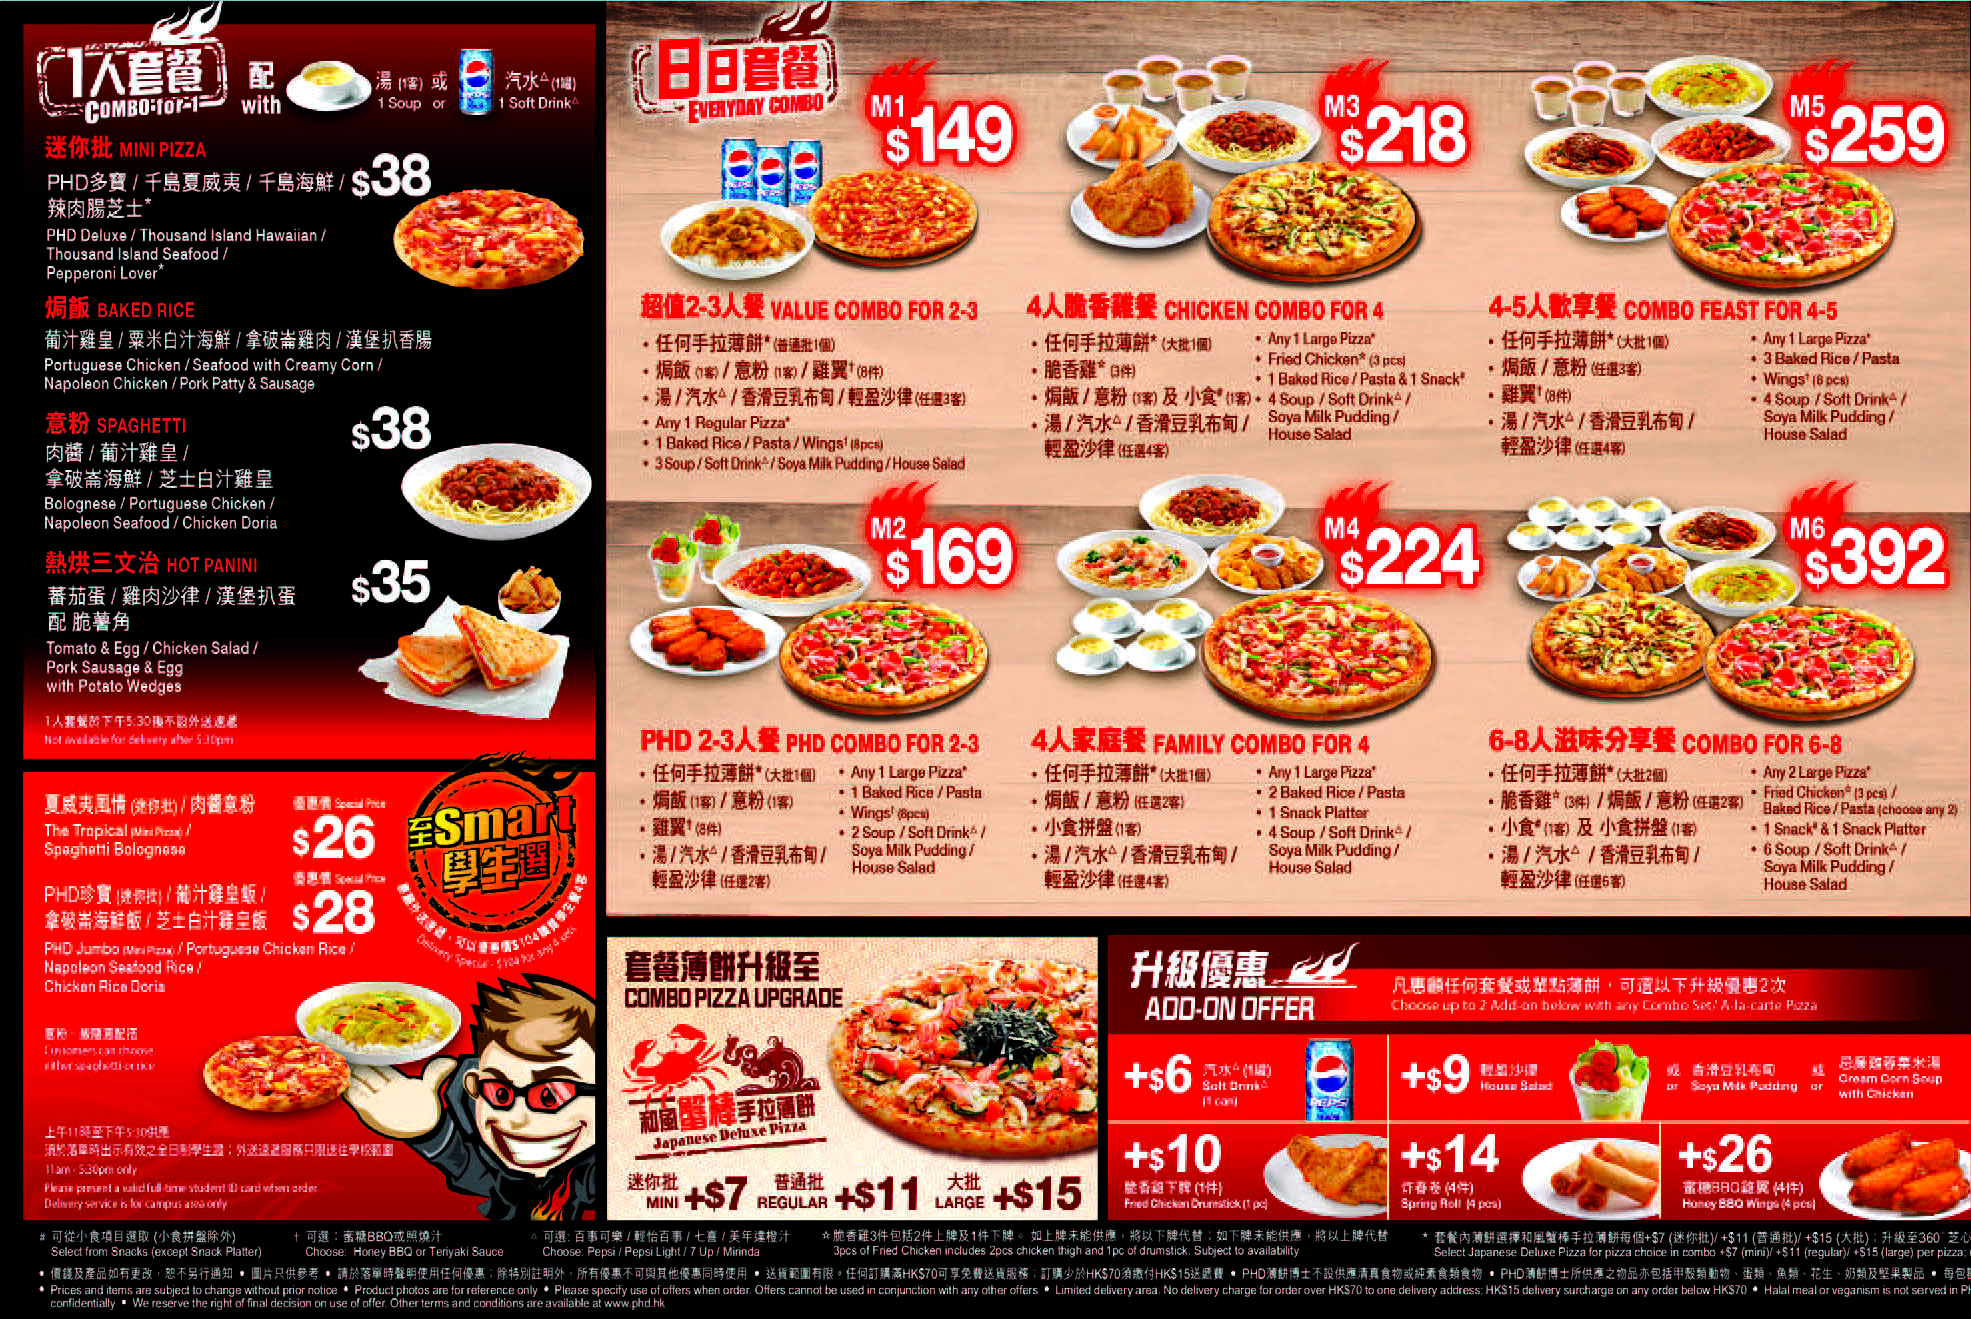 pizza hut mumbai menu pdf